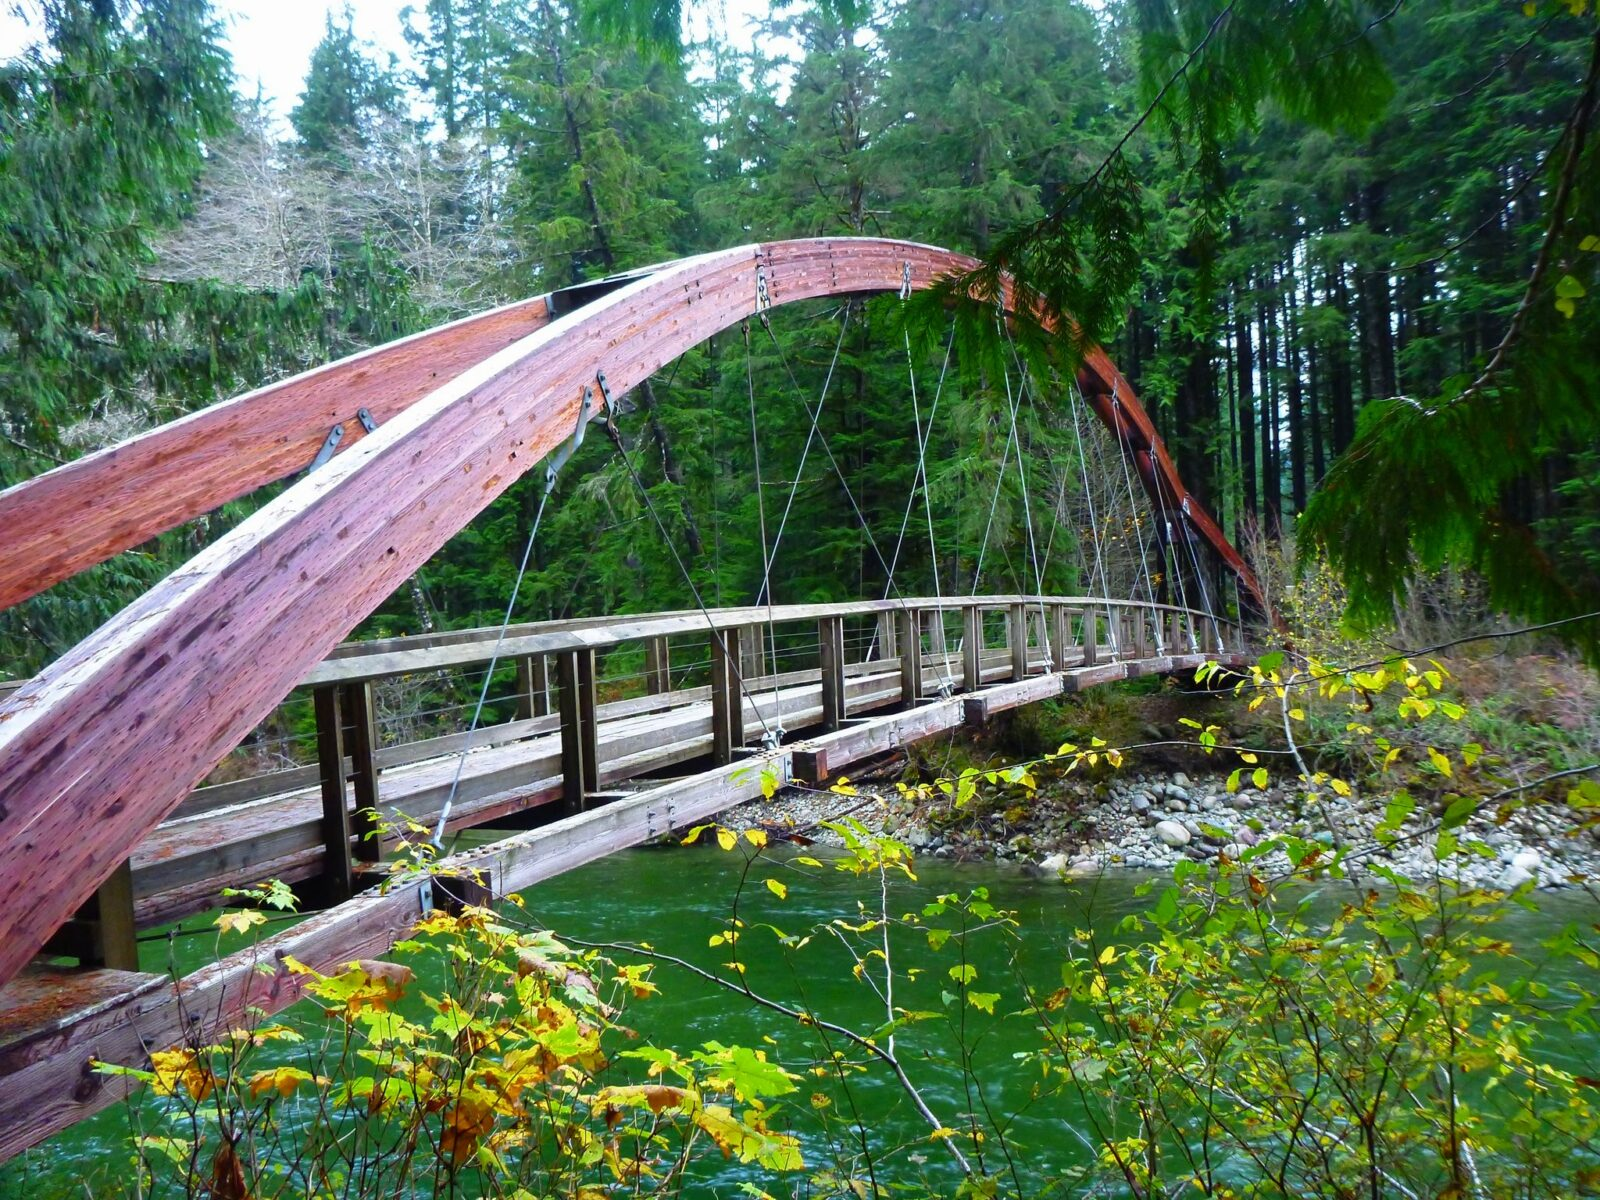 A wooden and cable bridge over the middle fork snoqualmie river, one of the many hikes near north bend washington, with an arched wooden top over a fast moving river. The bridge is surrounded by evergreen trees and bushes.